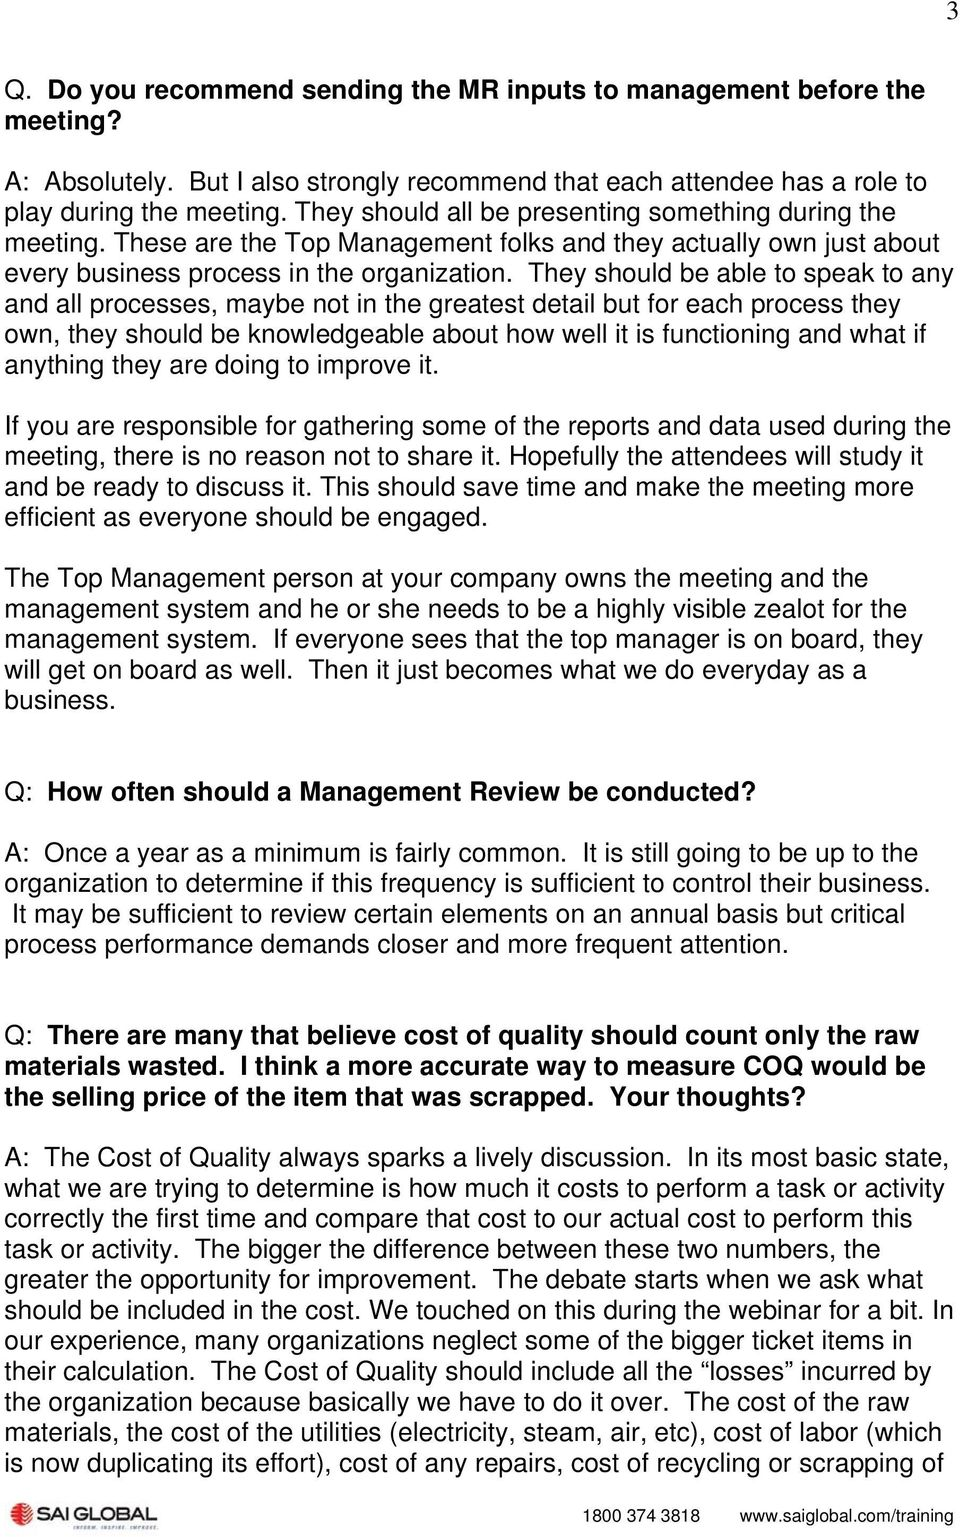 Improving Management Review Meetings Frequently Asked